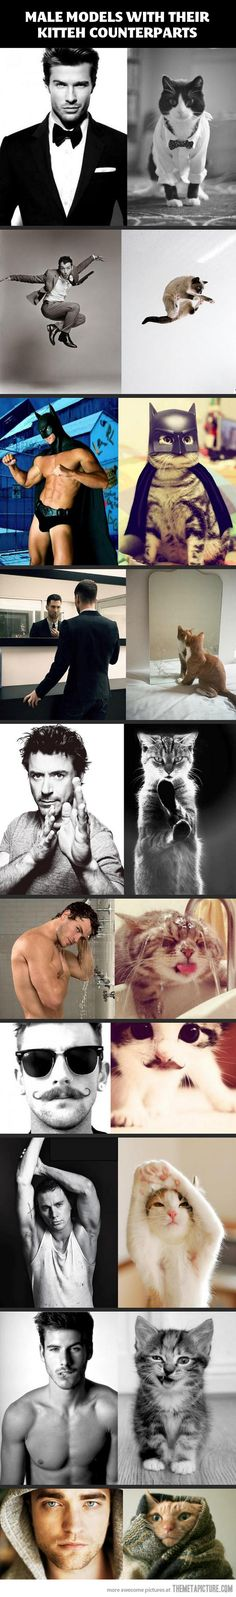 Males vs. kittens…hahaha. Ooh this is too funny!